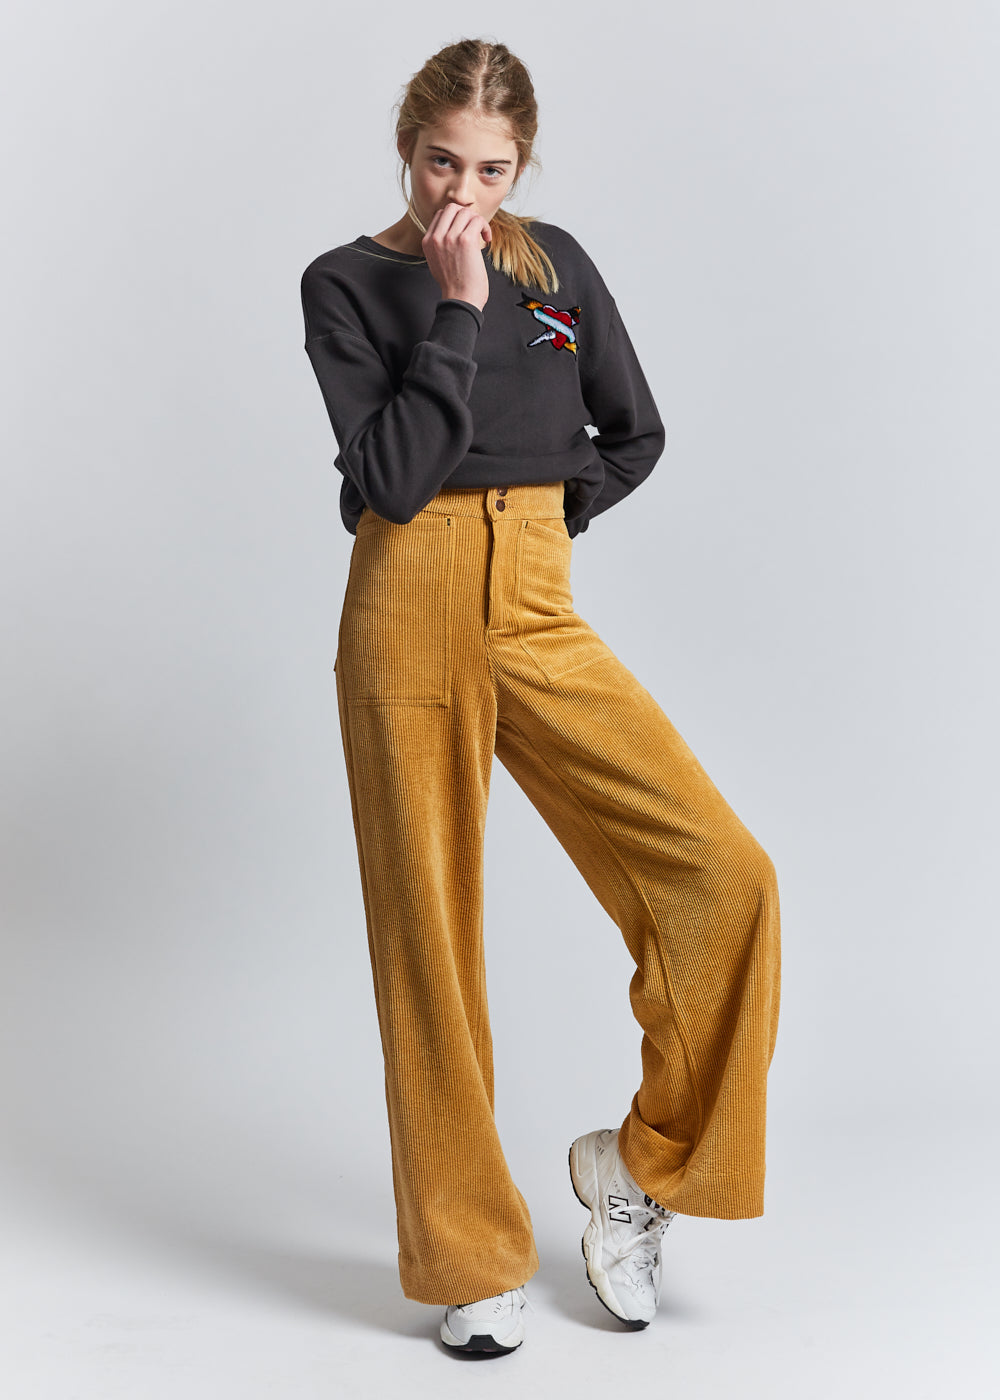 INDEE IDENTITY CORDUROY TROUSERS